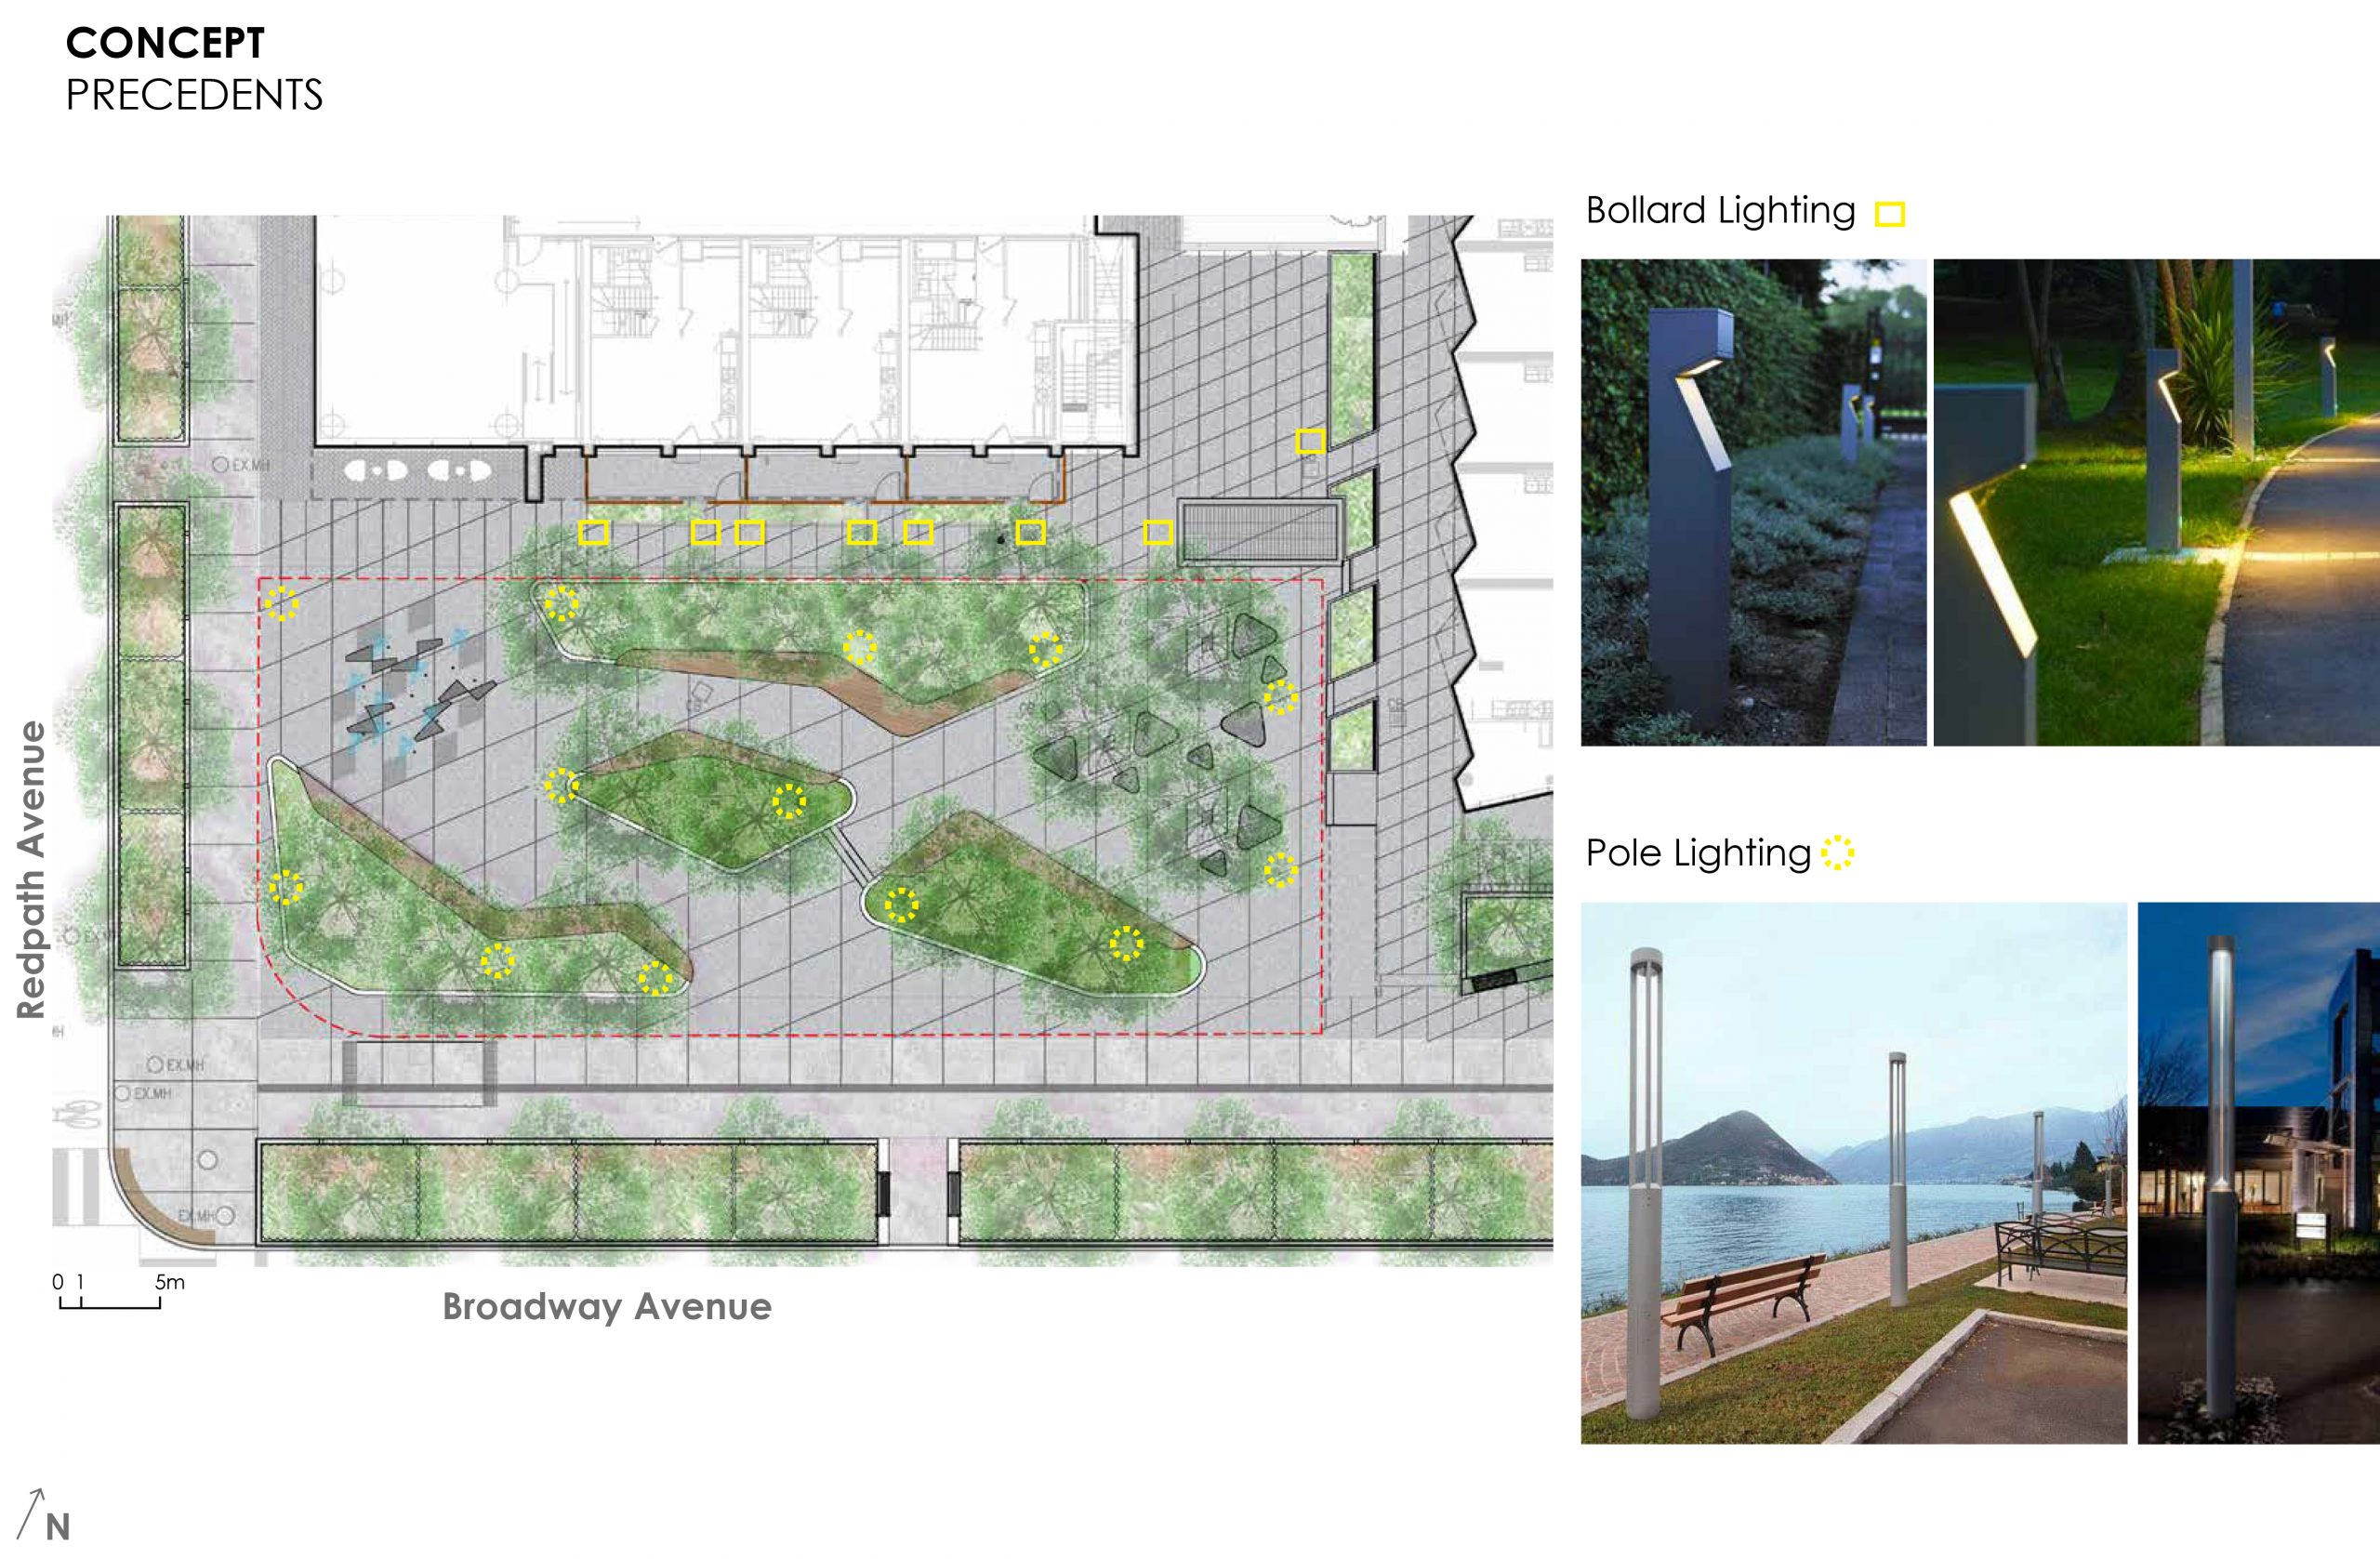 An image that provides some examples of the lighting options proposed for the new park. This includes pole lighting options and bollard lighting options that would be integrated throughout the park.